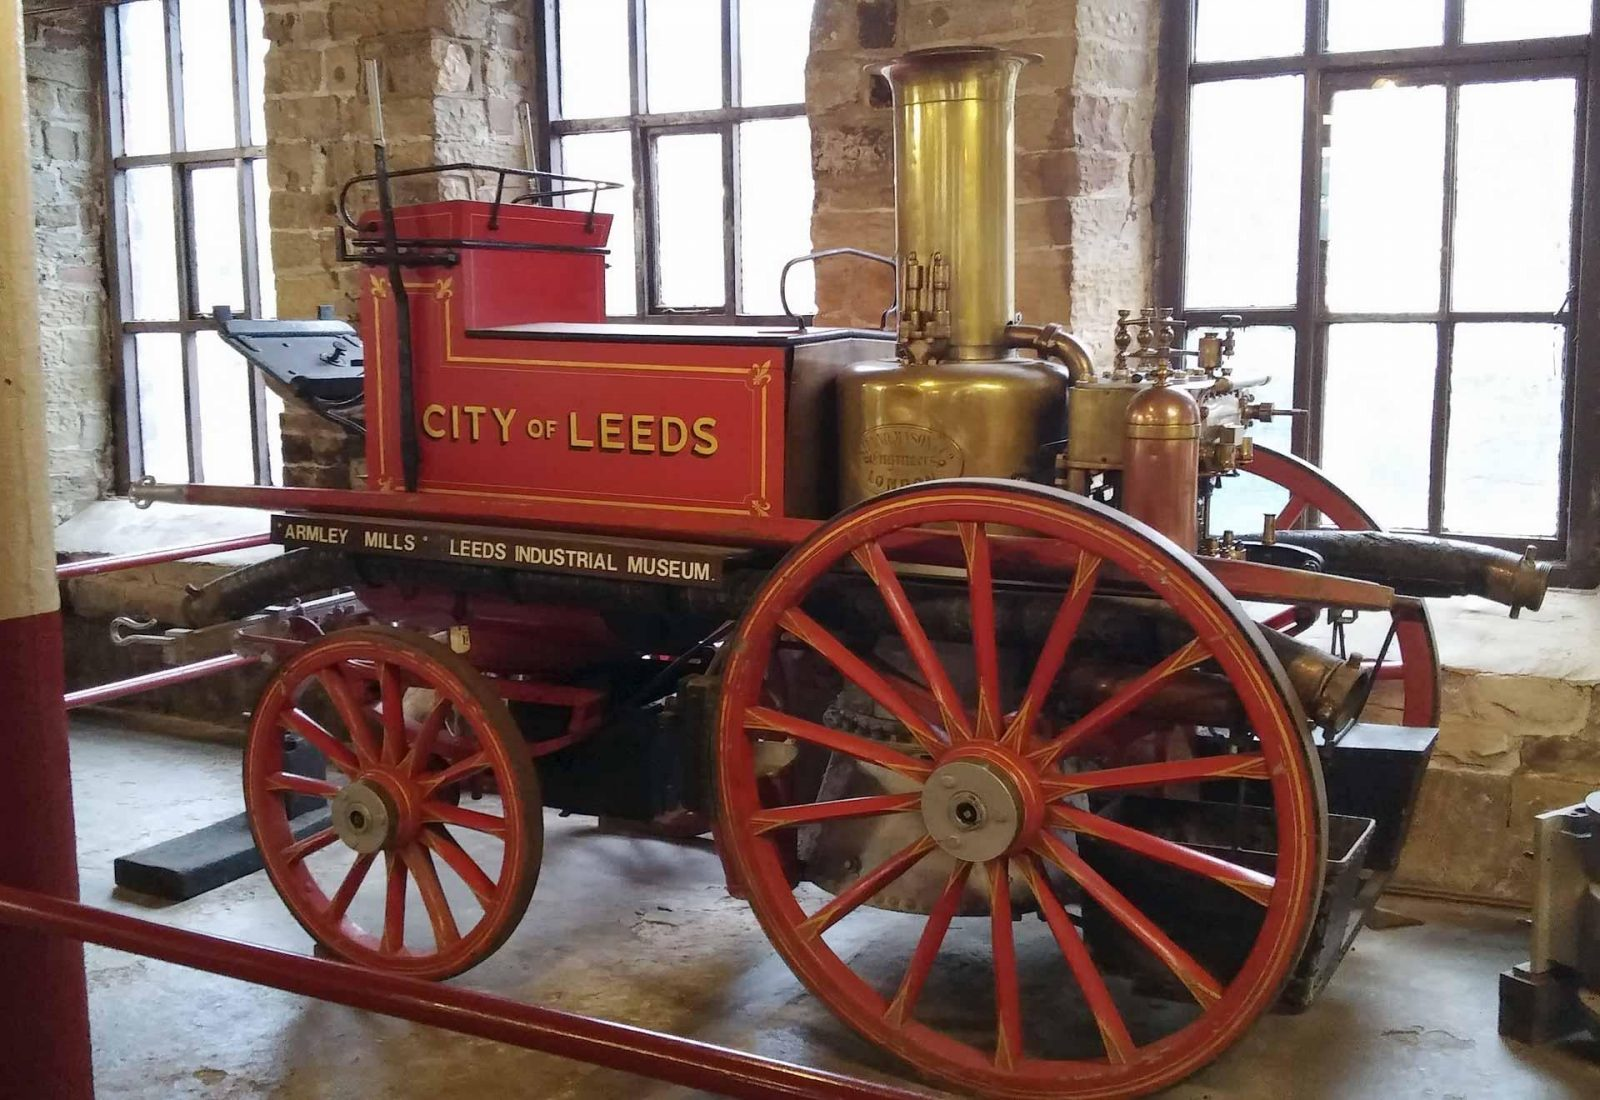 Discovering Leeds Industrial Museum with kids on Falcondale Life blog. A red traction engine